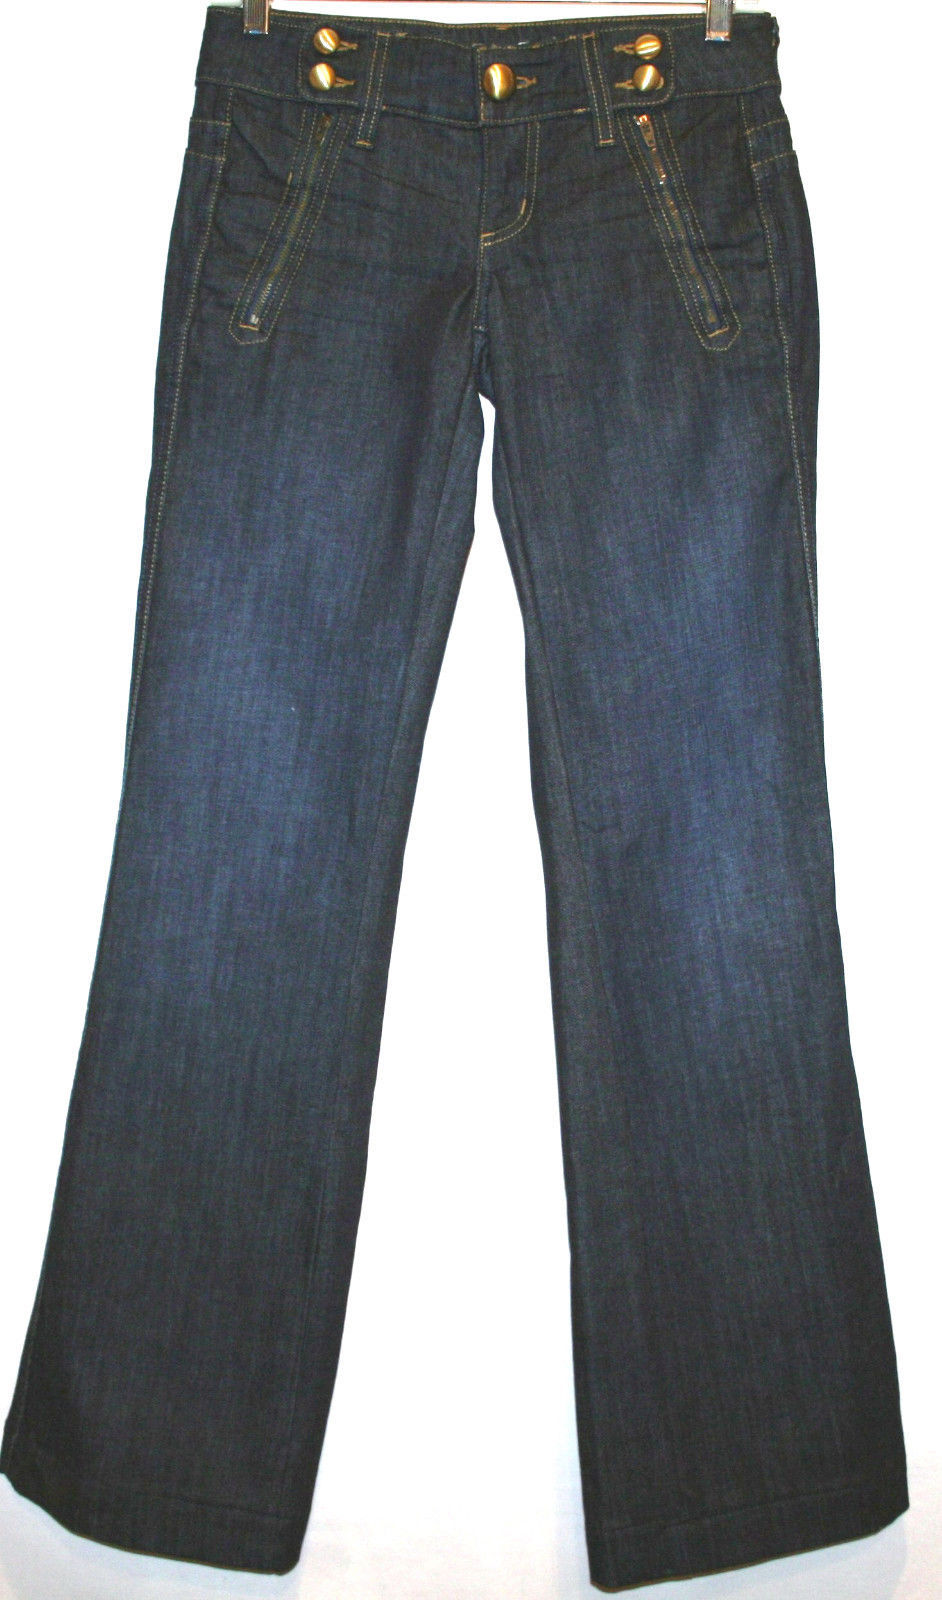 Primary image for JUICY COUTURE Dark Wash Low Rise Boot Cut Jeans Wide Waistband Size 25   #624